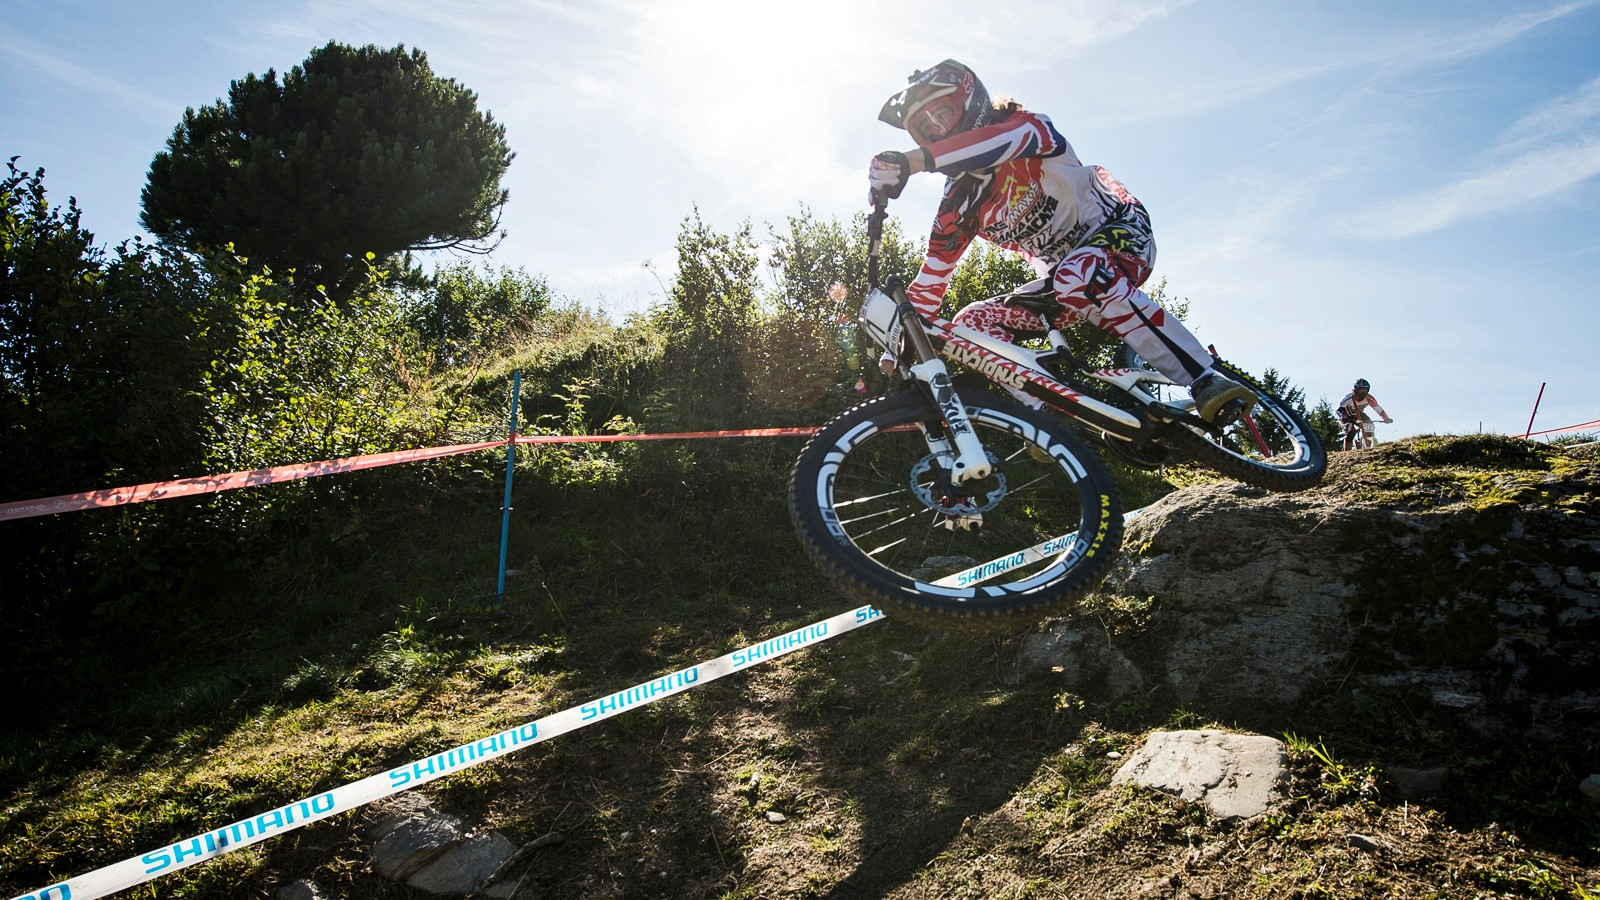 Glory on the day may have gone to Sam Hill and Rachel Atherton, but it was Josh Bryceland (pictured) and Manon Carpenter who took home the series titles